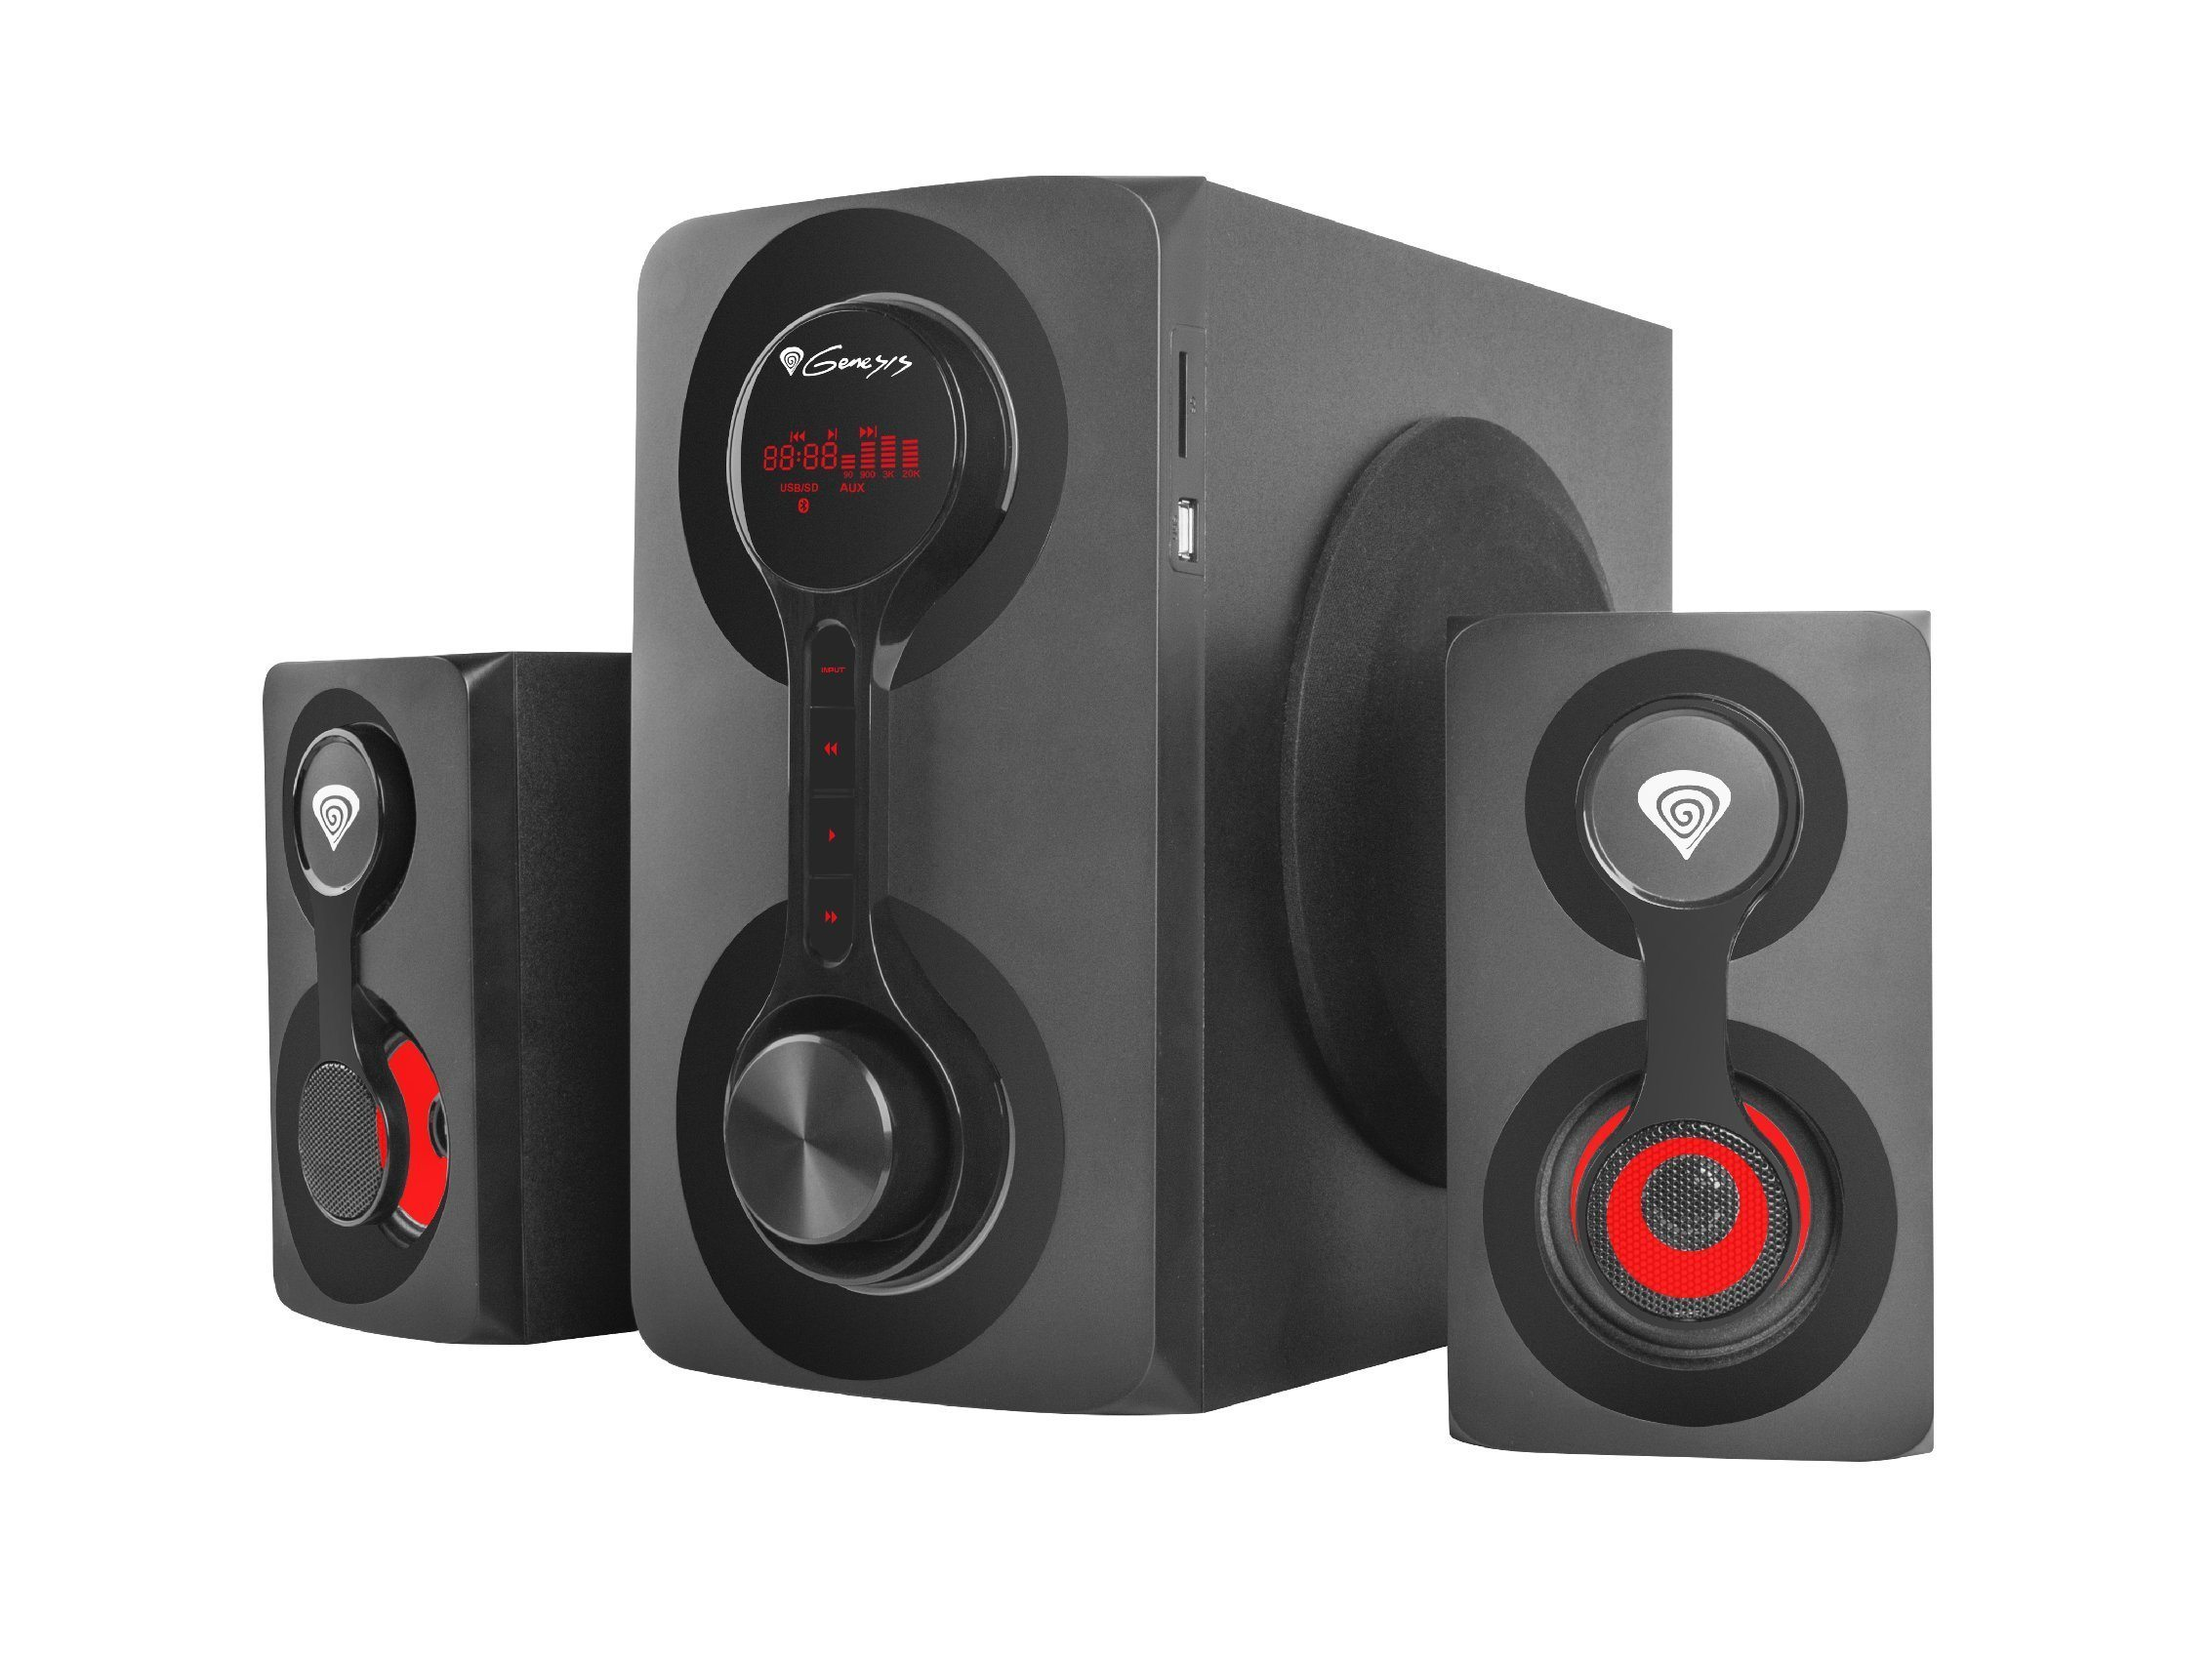 тонколони Speakers 2.1 - HELIUM 700BT - 60W RMS, Bluetooth 4.2, USB/SD card MP3 player, remote - NCS-1307